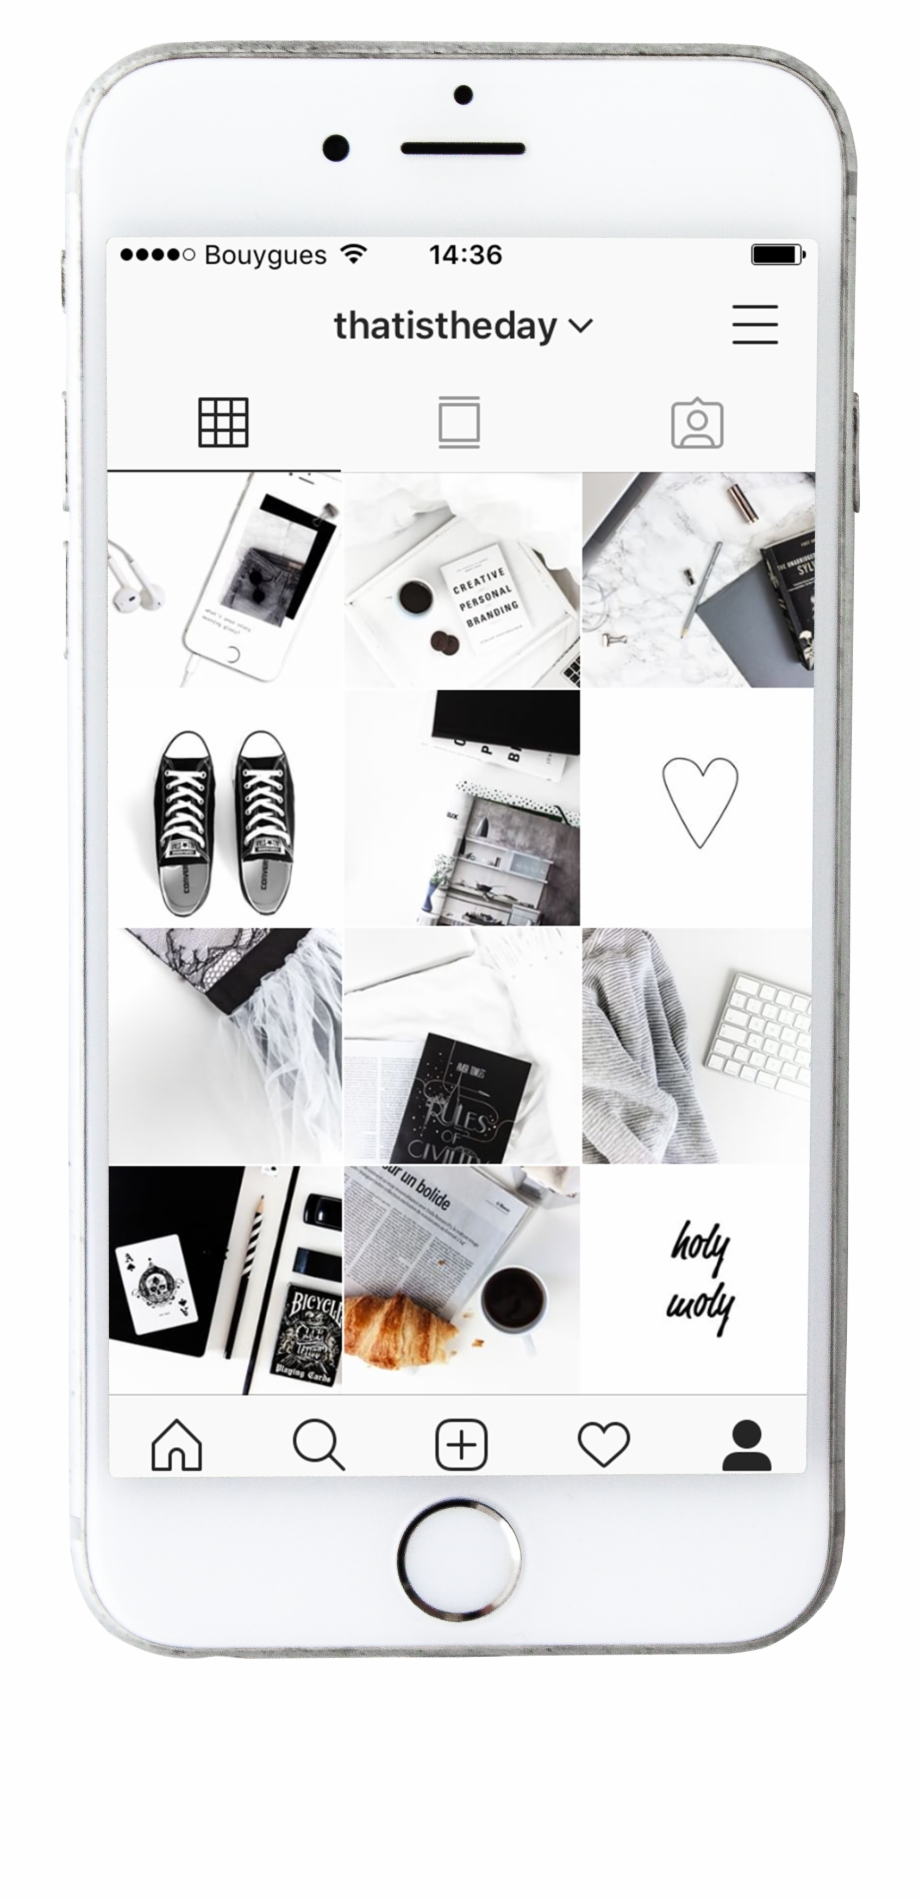 Phone mock up clipart graphic transparent library Instagram Feed Mockup - Feature Phone Free PNG Images ... graphic transparent library